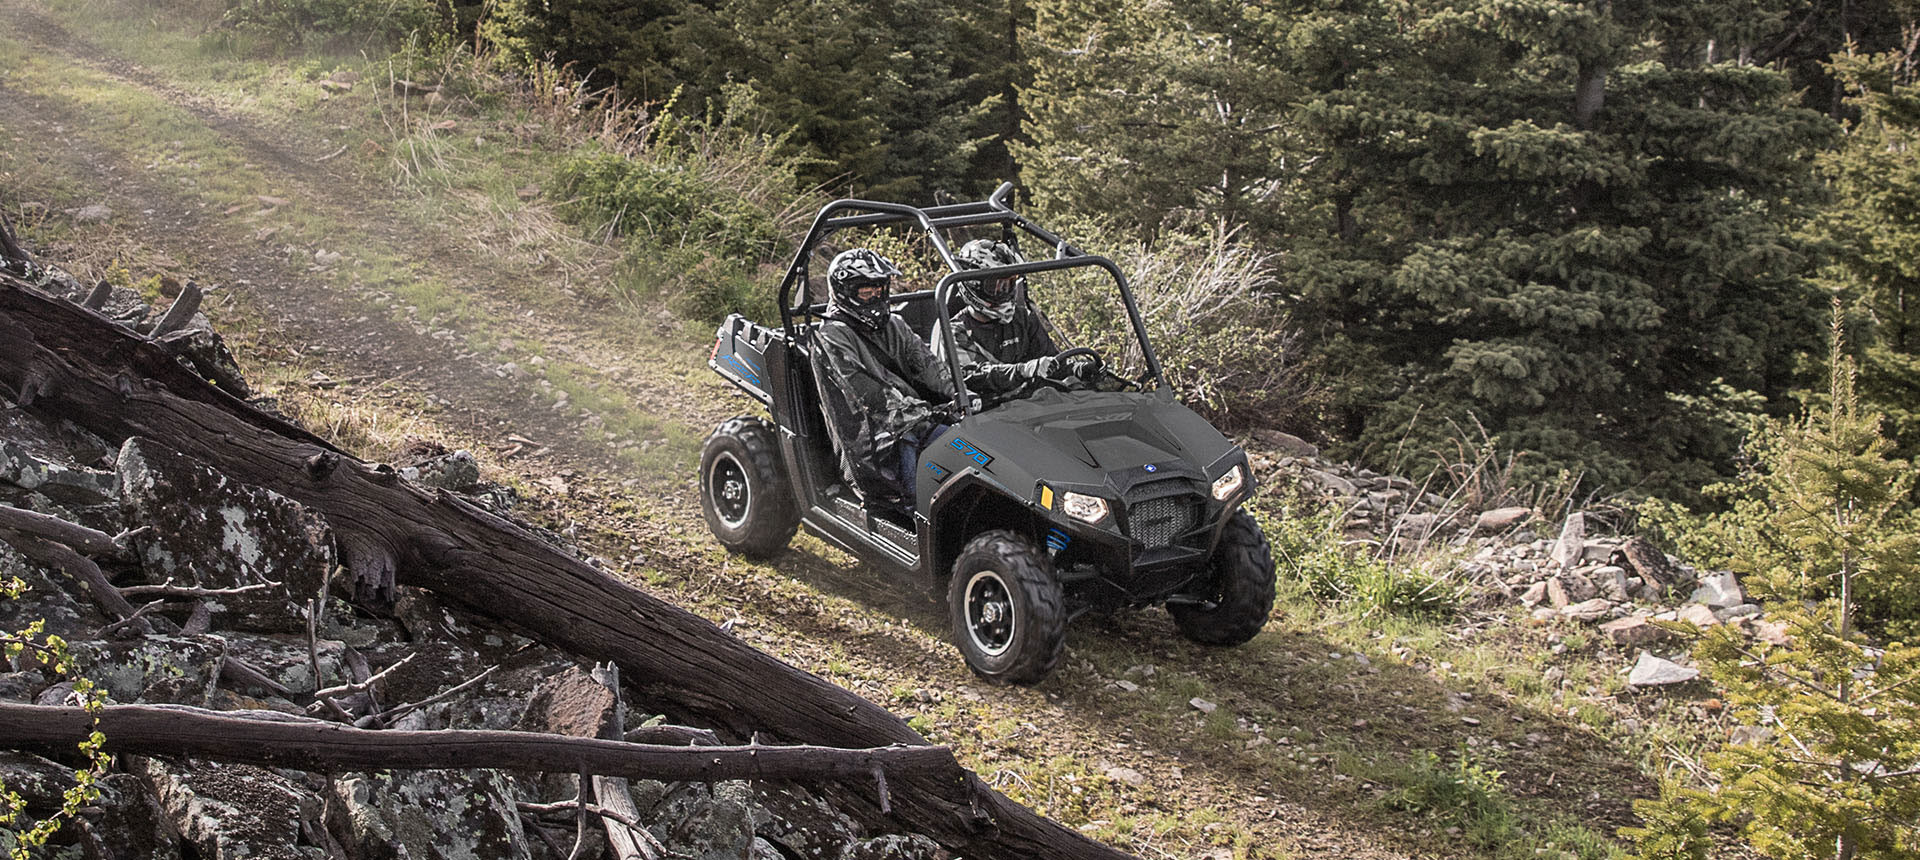 2020 RZR<sup>®</sup> Trail 570 Instagram image 1